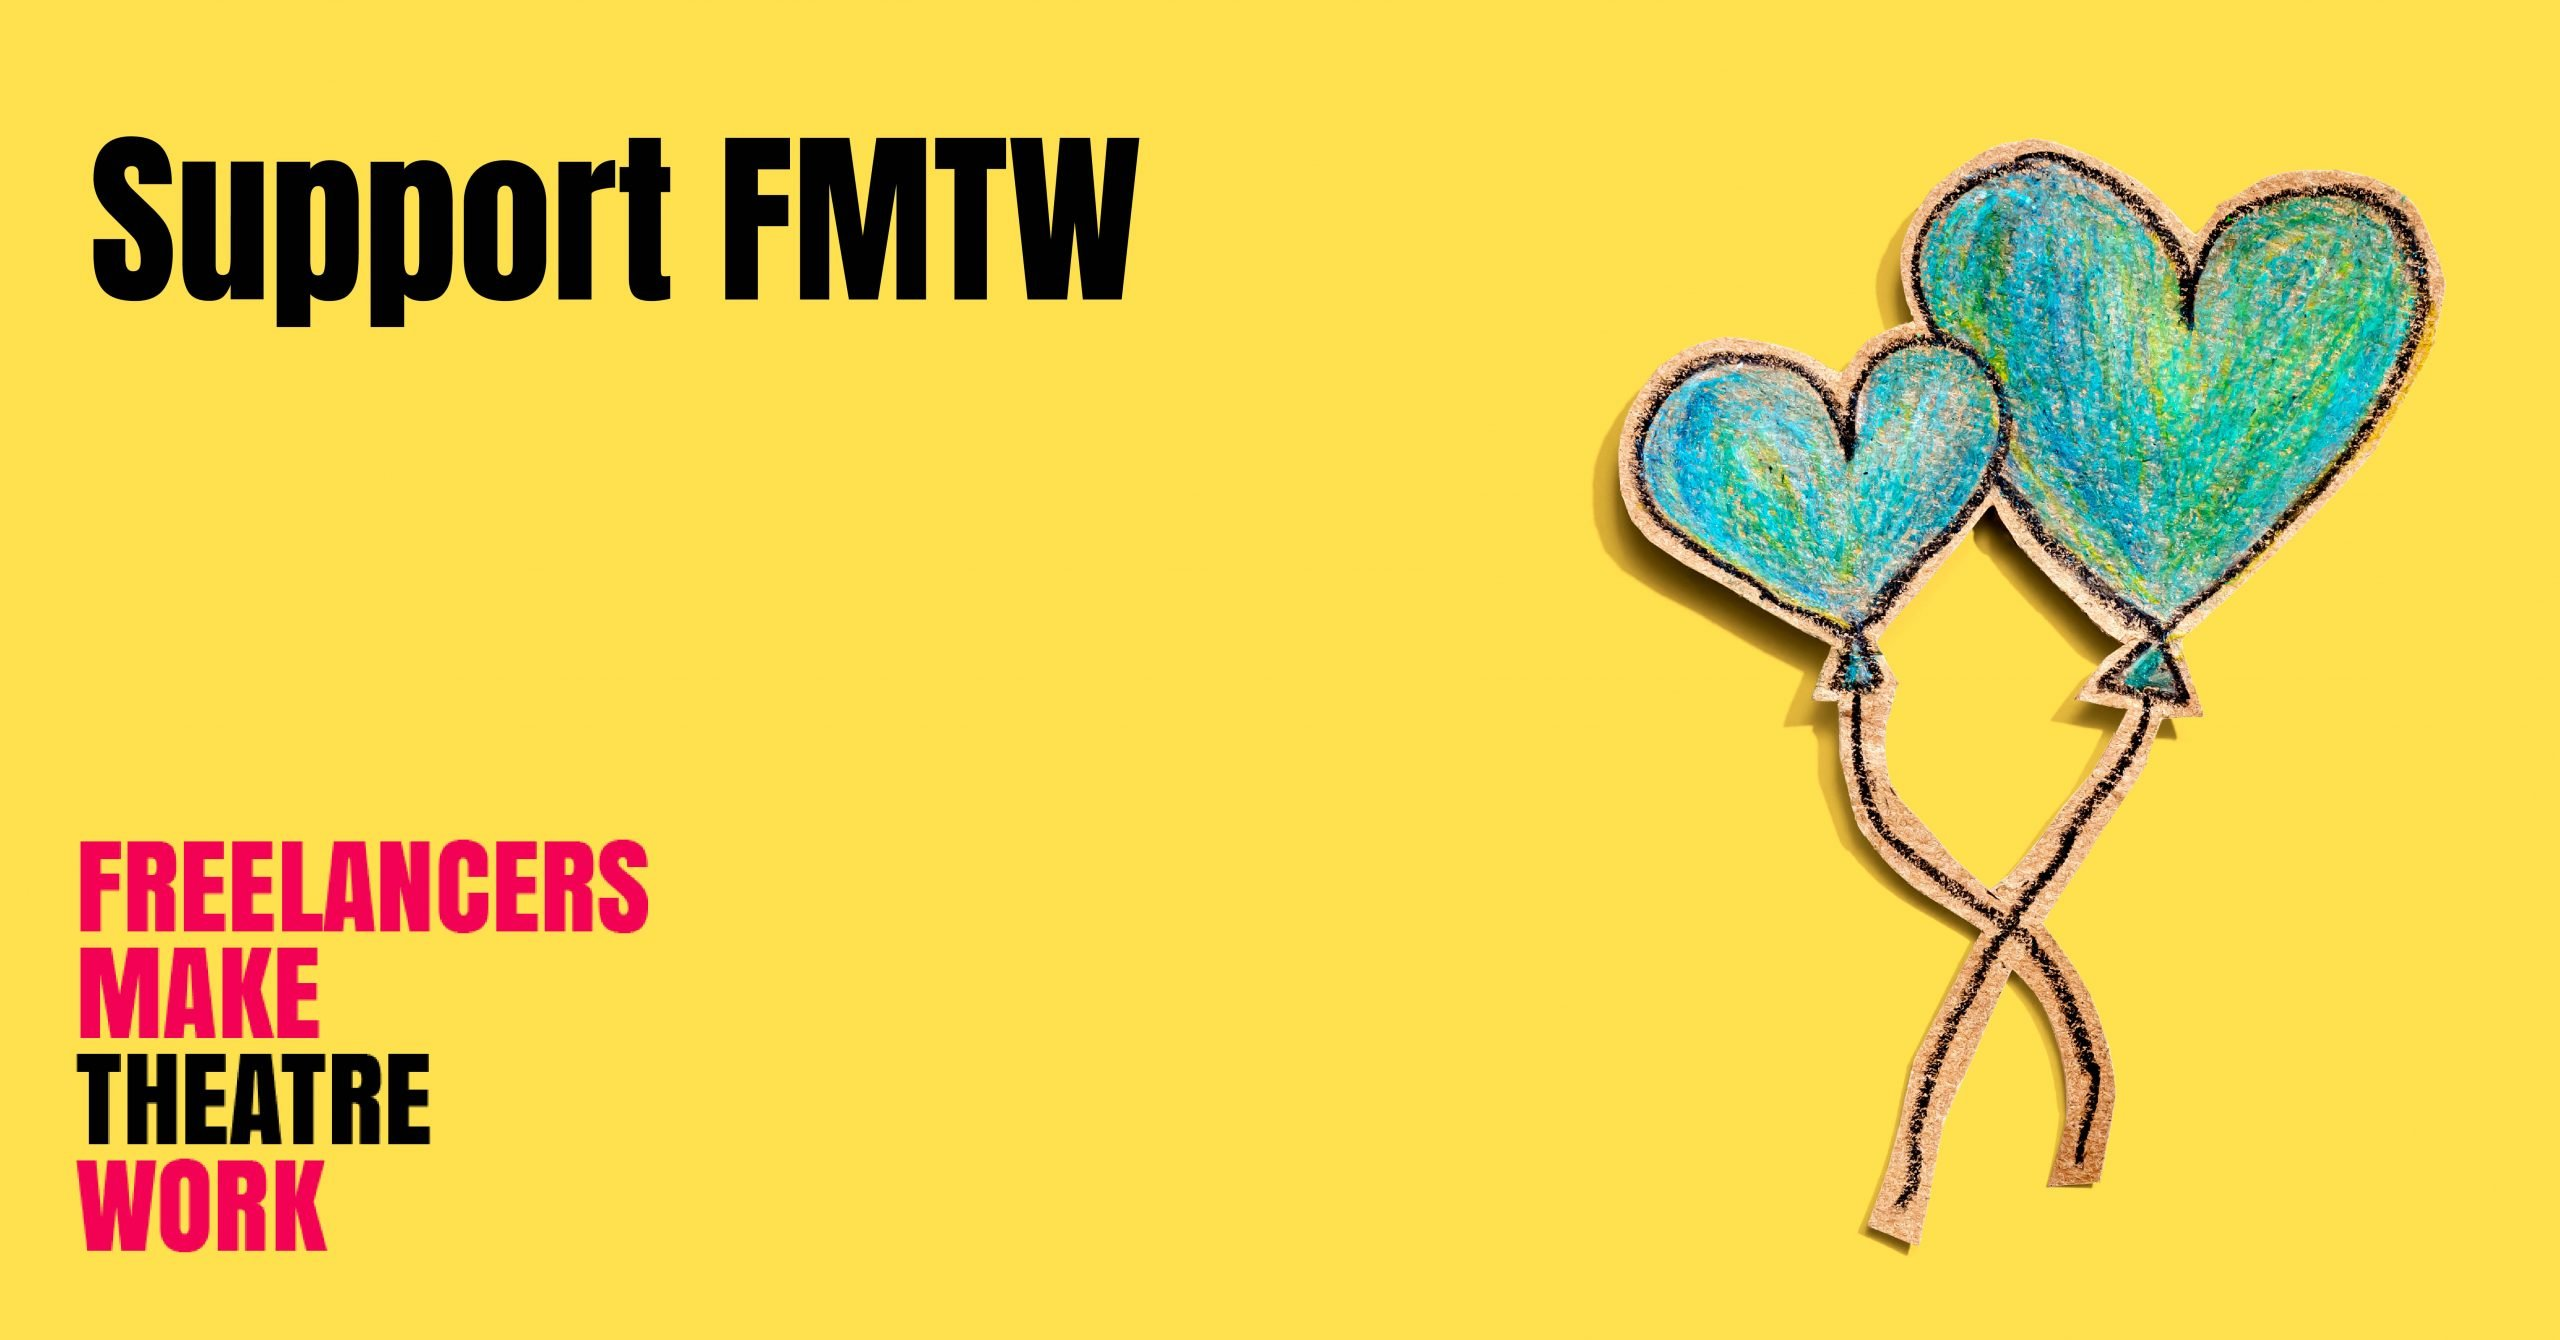 Two hand drawn bluy ballons sit on a yellow background. The words 'Support FMTW' are written in a bold, black font with the red and black Freelancers Make Theatre Work logo in the lower left corner.